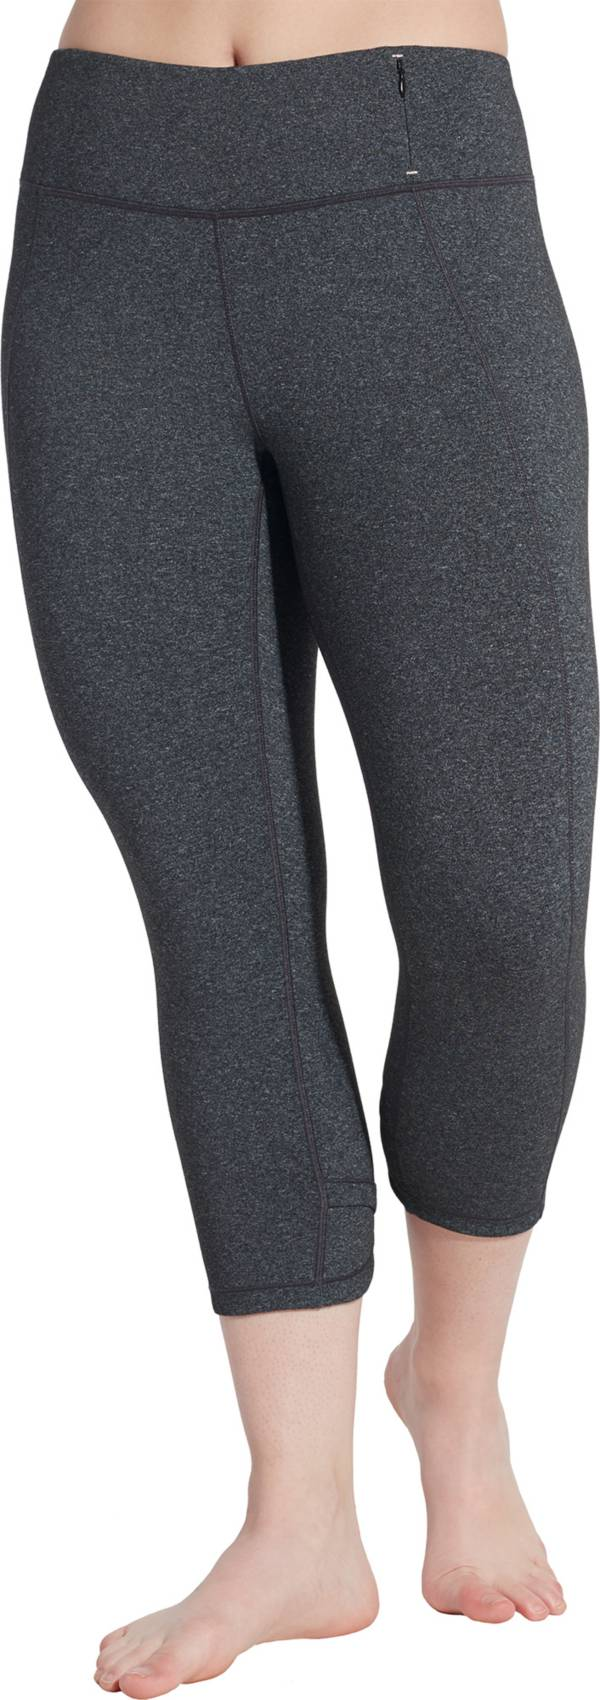 CALIA by Carrie Underwood Women's Essential Crossover Tight Fit Capris product image